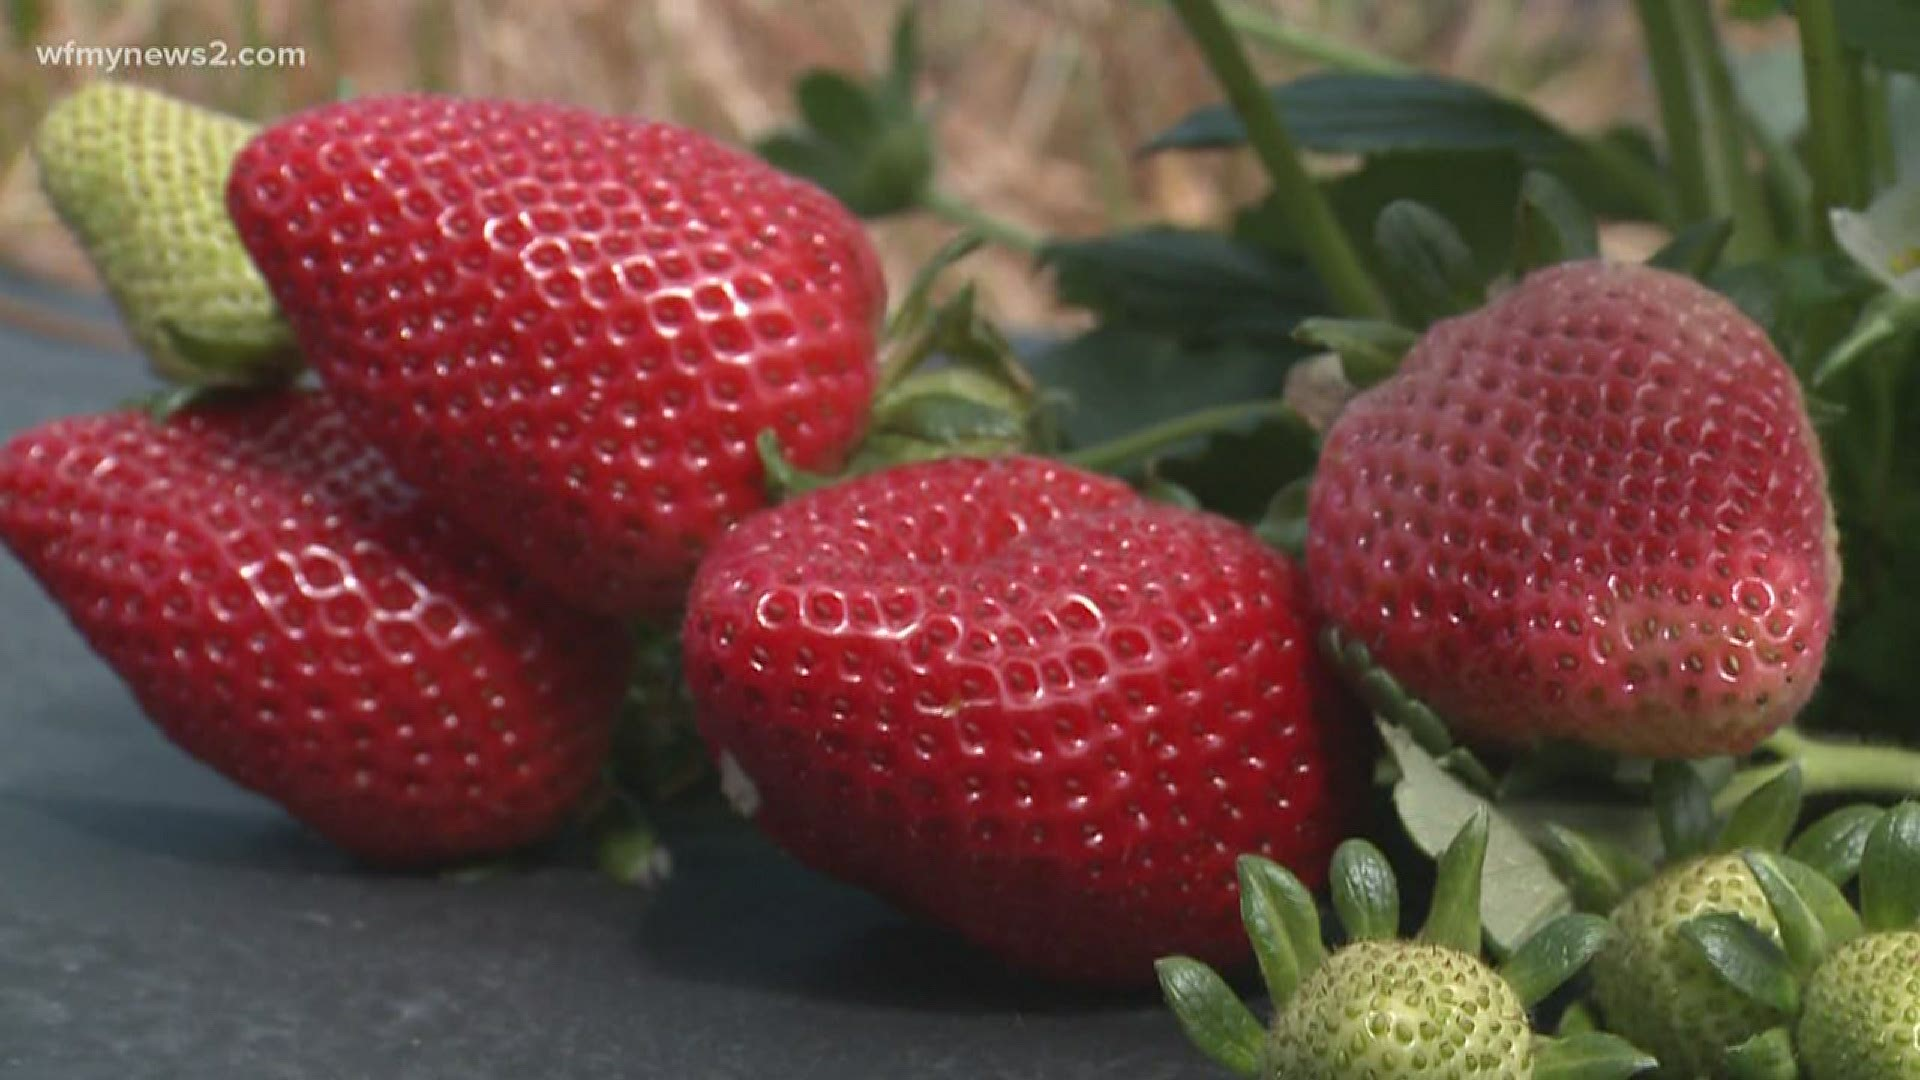 Triad Strawberry Farms Make Changes As States Look To Reopen Wfmynews2 Com